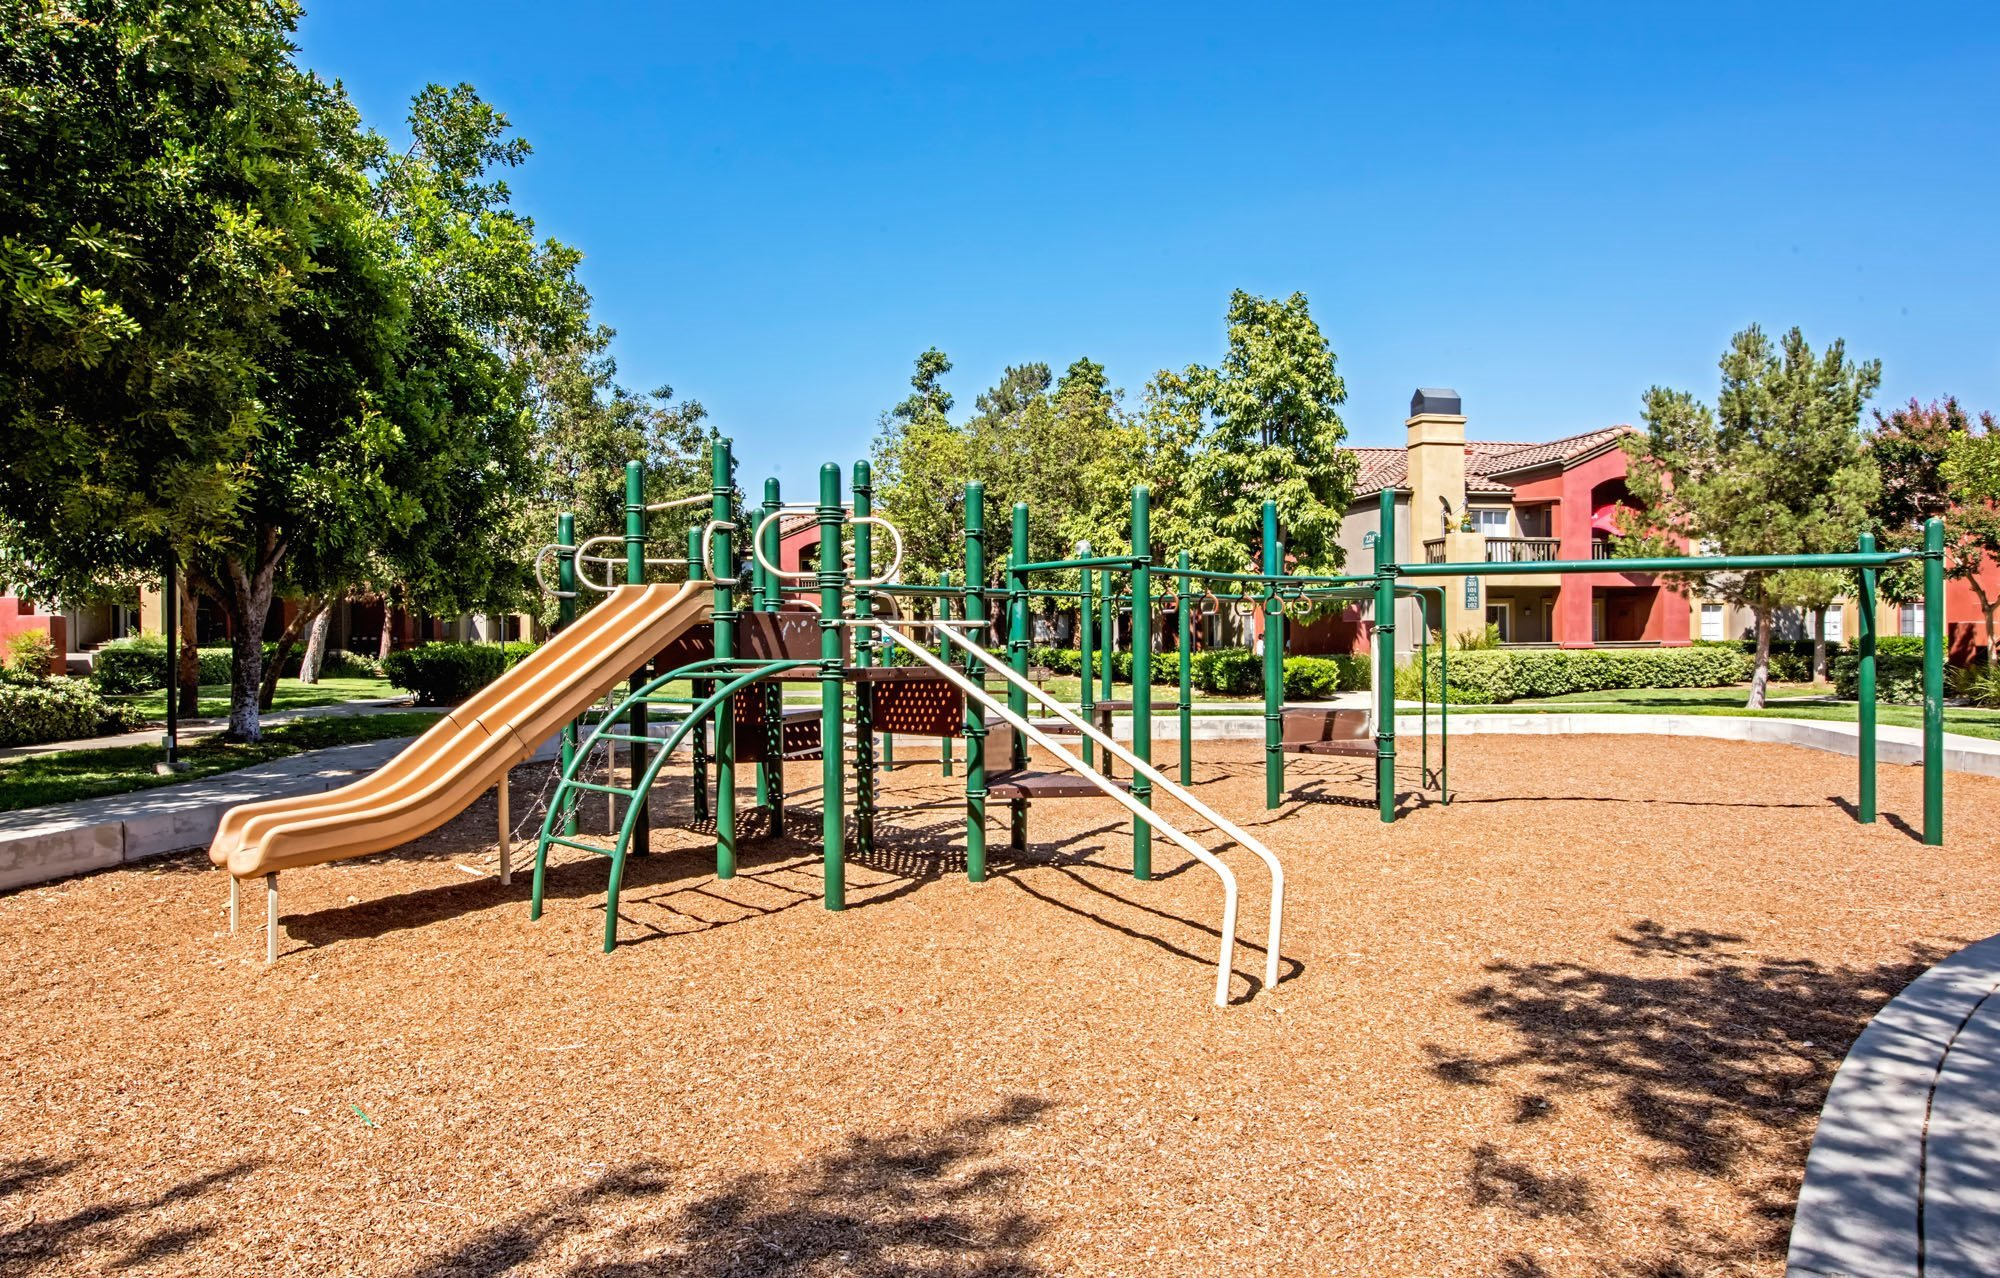 Playground at Deerwood Apartments in Corona California